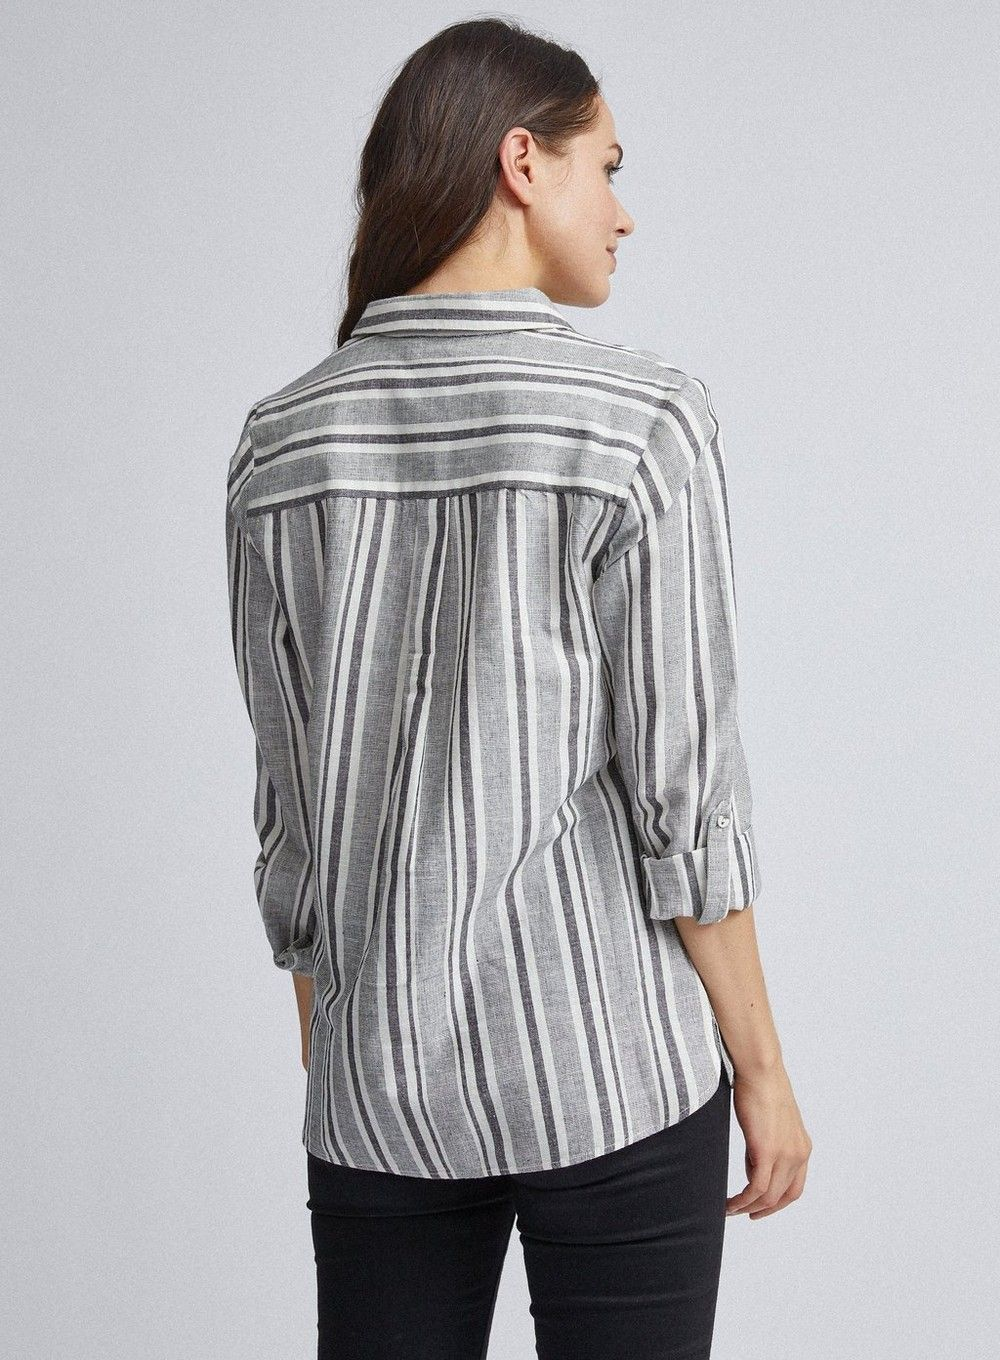 Dorothy Perkins Womens Multi Coloured Striped Linen Look Button Up Shirt